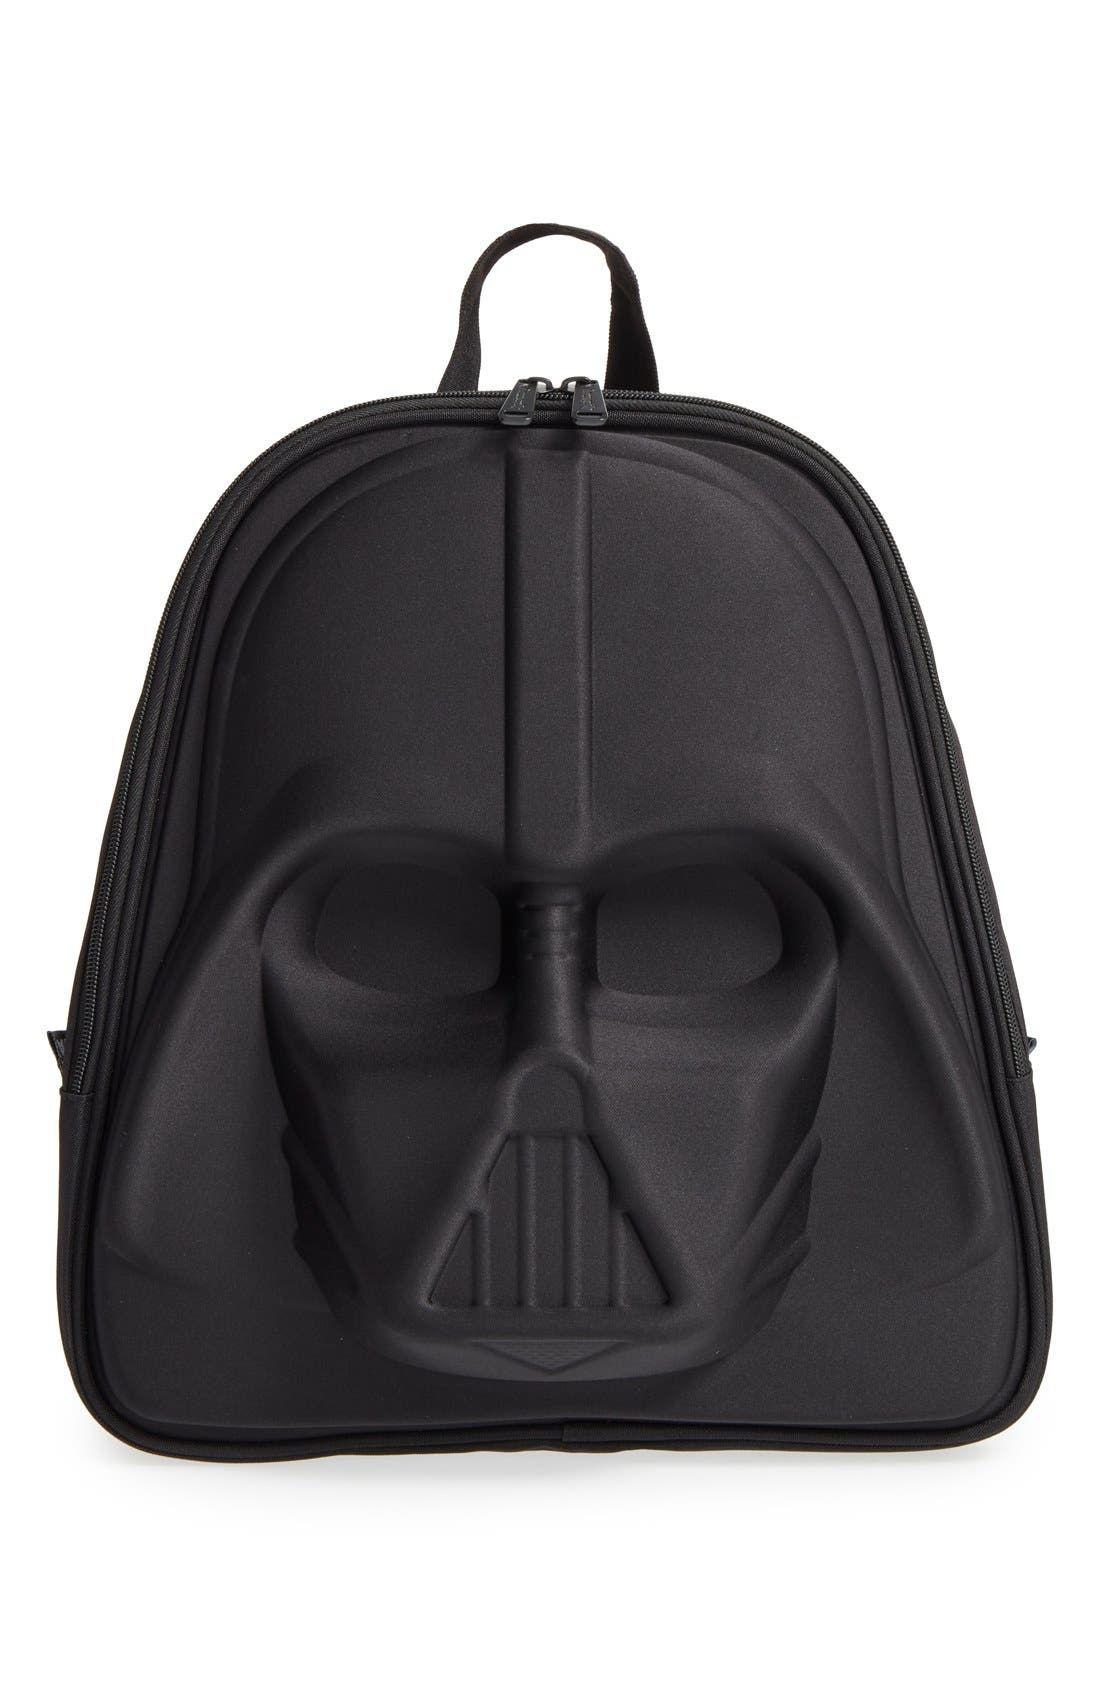 'Star Wars<sup>™</sup> - Darth Vader' Backpack,                             Main thumbnail 1, color,                             001